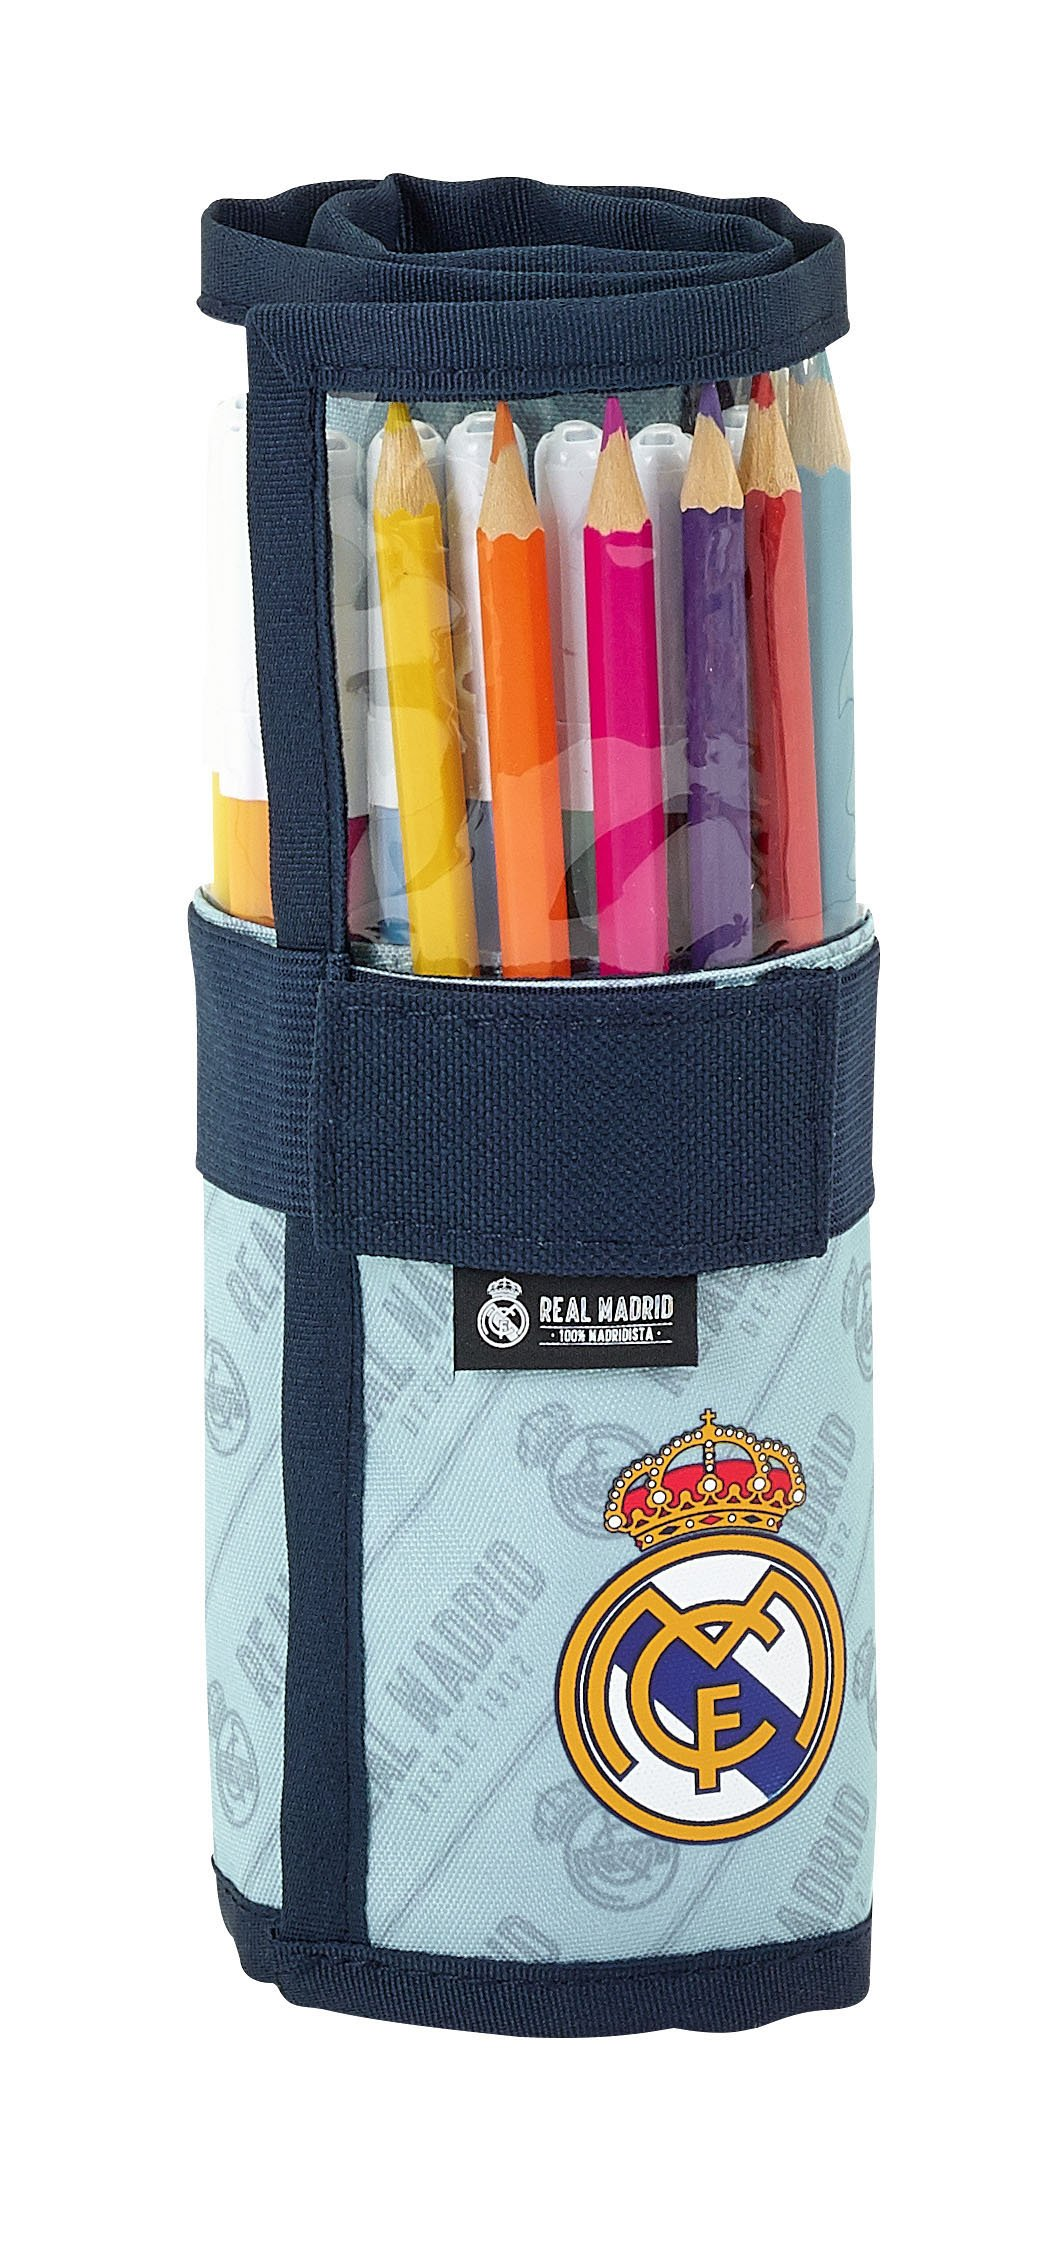 Safta Estuche Enrollable Real Madrid Corporativa Oficial Útiles Incluidos 70x200mm